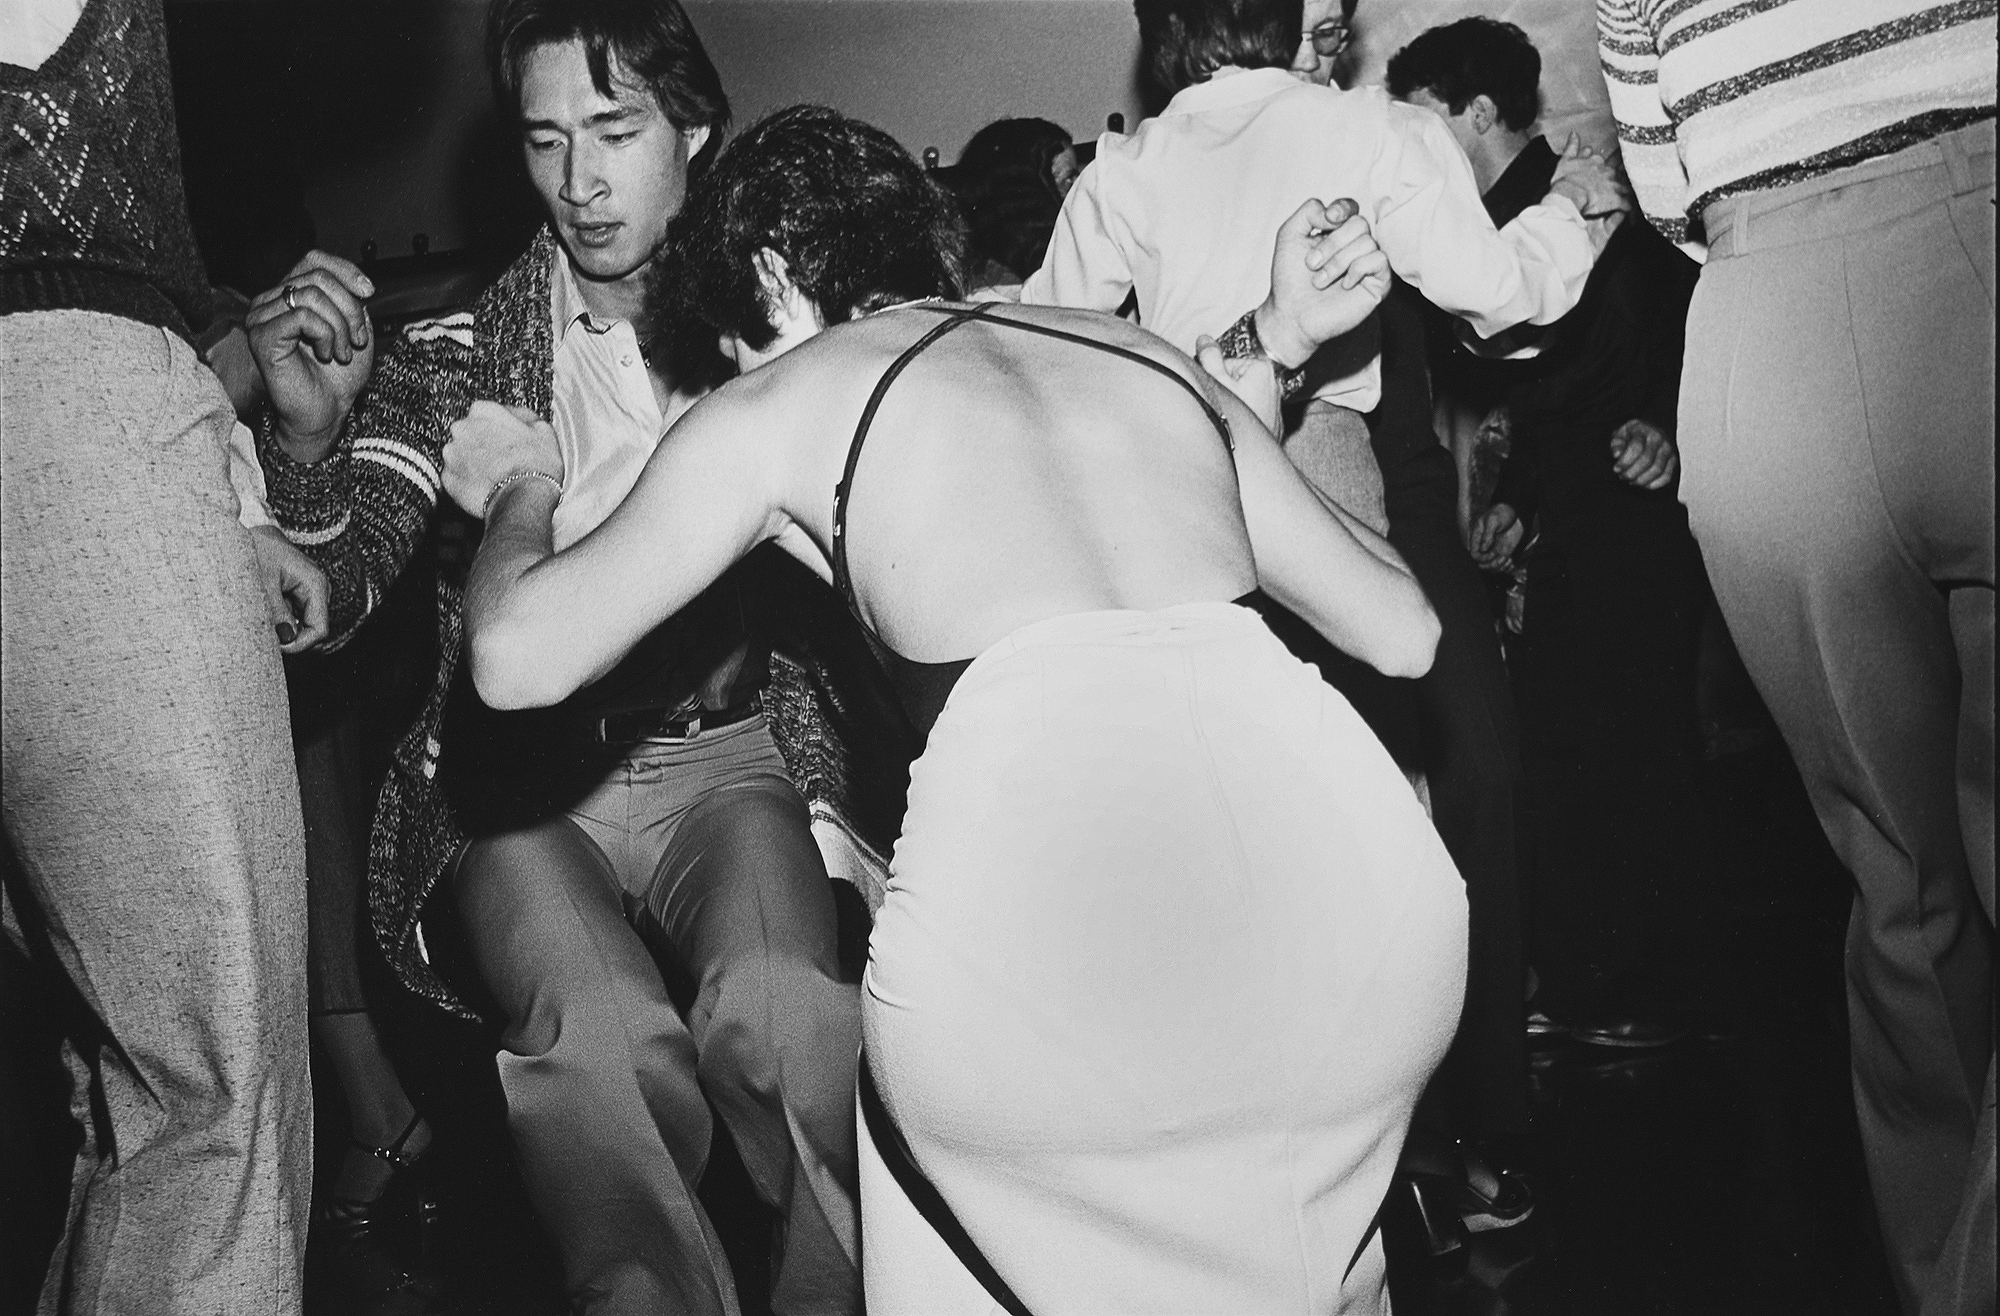 Tony_Ward_photography_early_work_Night_Fever_portfolio_1970's_erotic_dirty_dancing_couples_